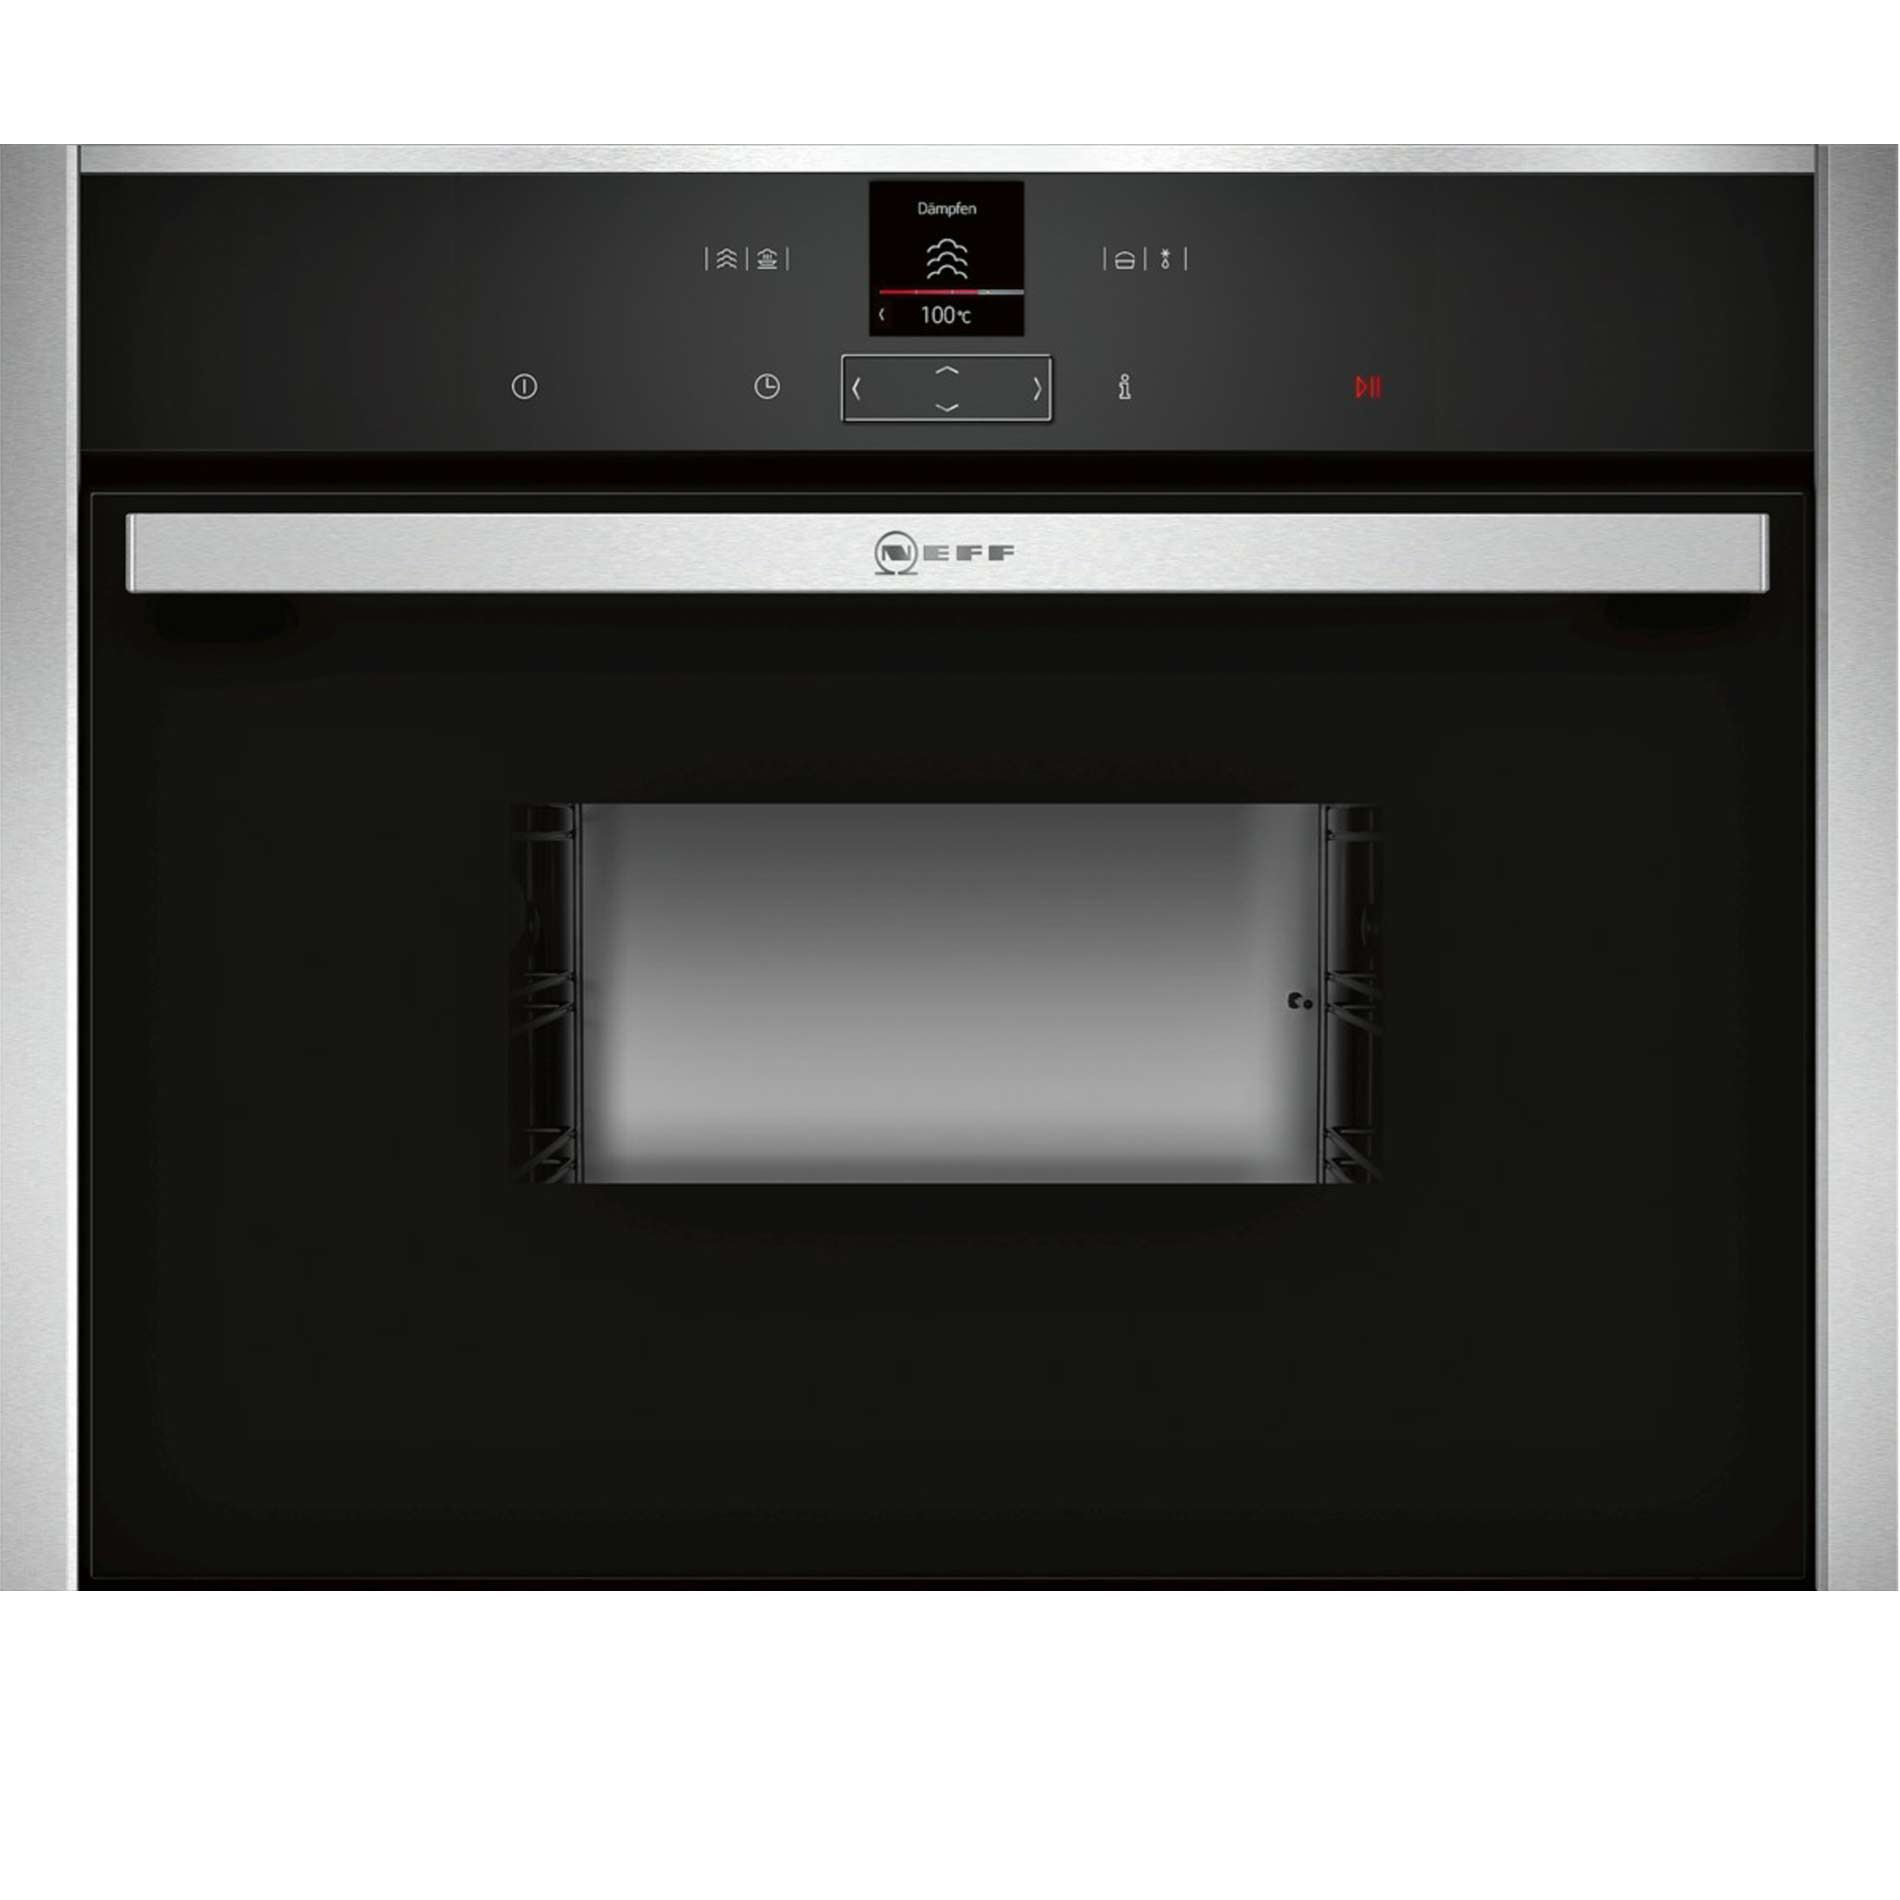 Neff C17dr02n0b Full Steam Oven  Appliance Source. Granite Countertop Showroom. Beautiful Staircases. Images Of Fireplaces. Pop Furniture. Sliding Closet Doors. Carpet Stair Treads Lowes. Onyx Countertops. Quartz Countertops Vs Granite